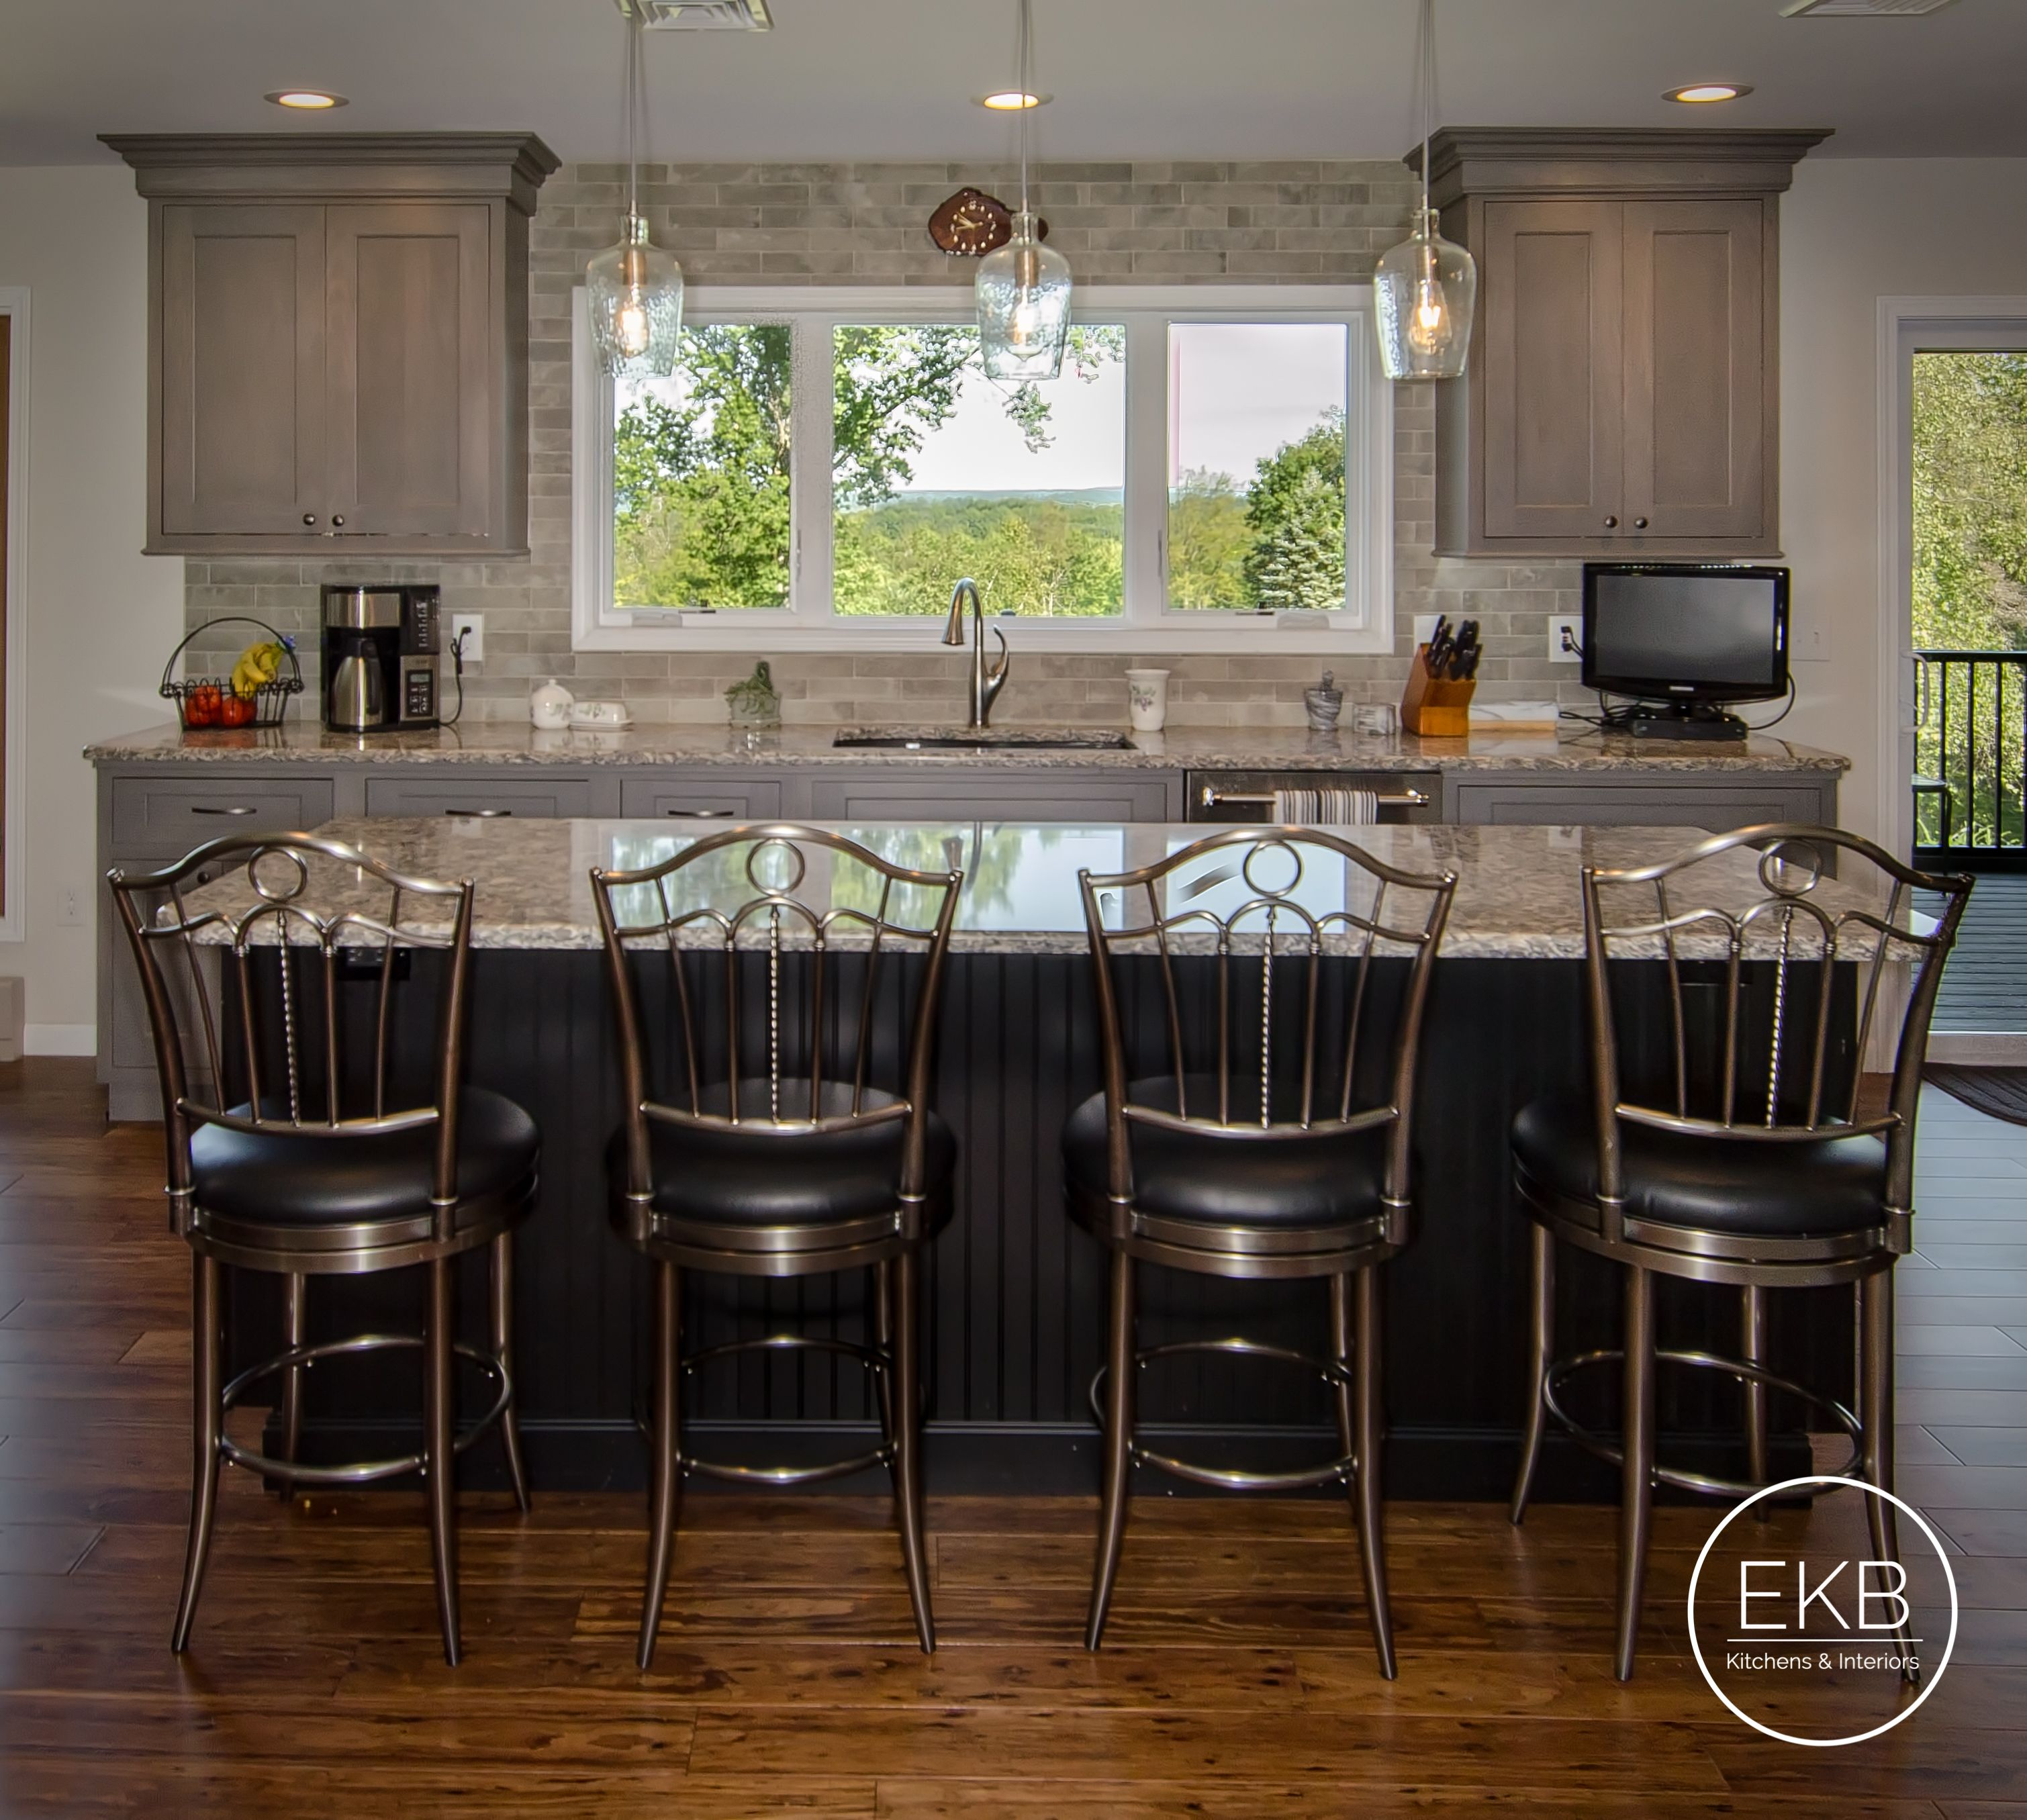 Shiloh Select Poplare Cabinets In Heatherstone And Maple Island In